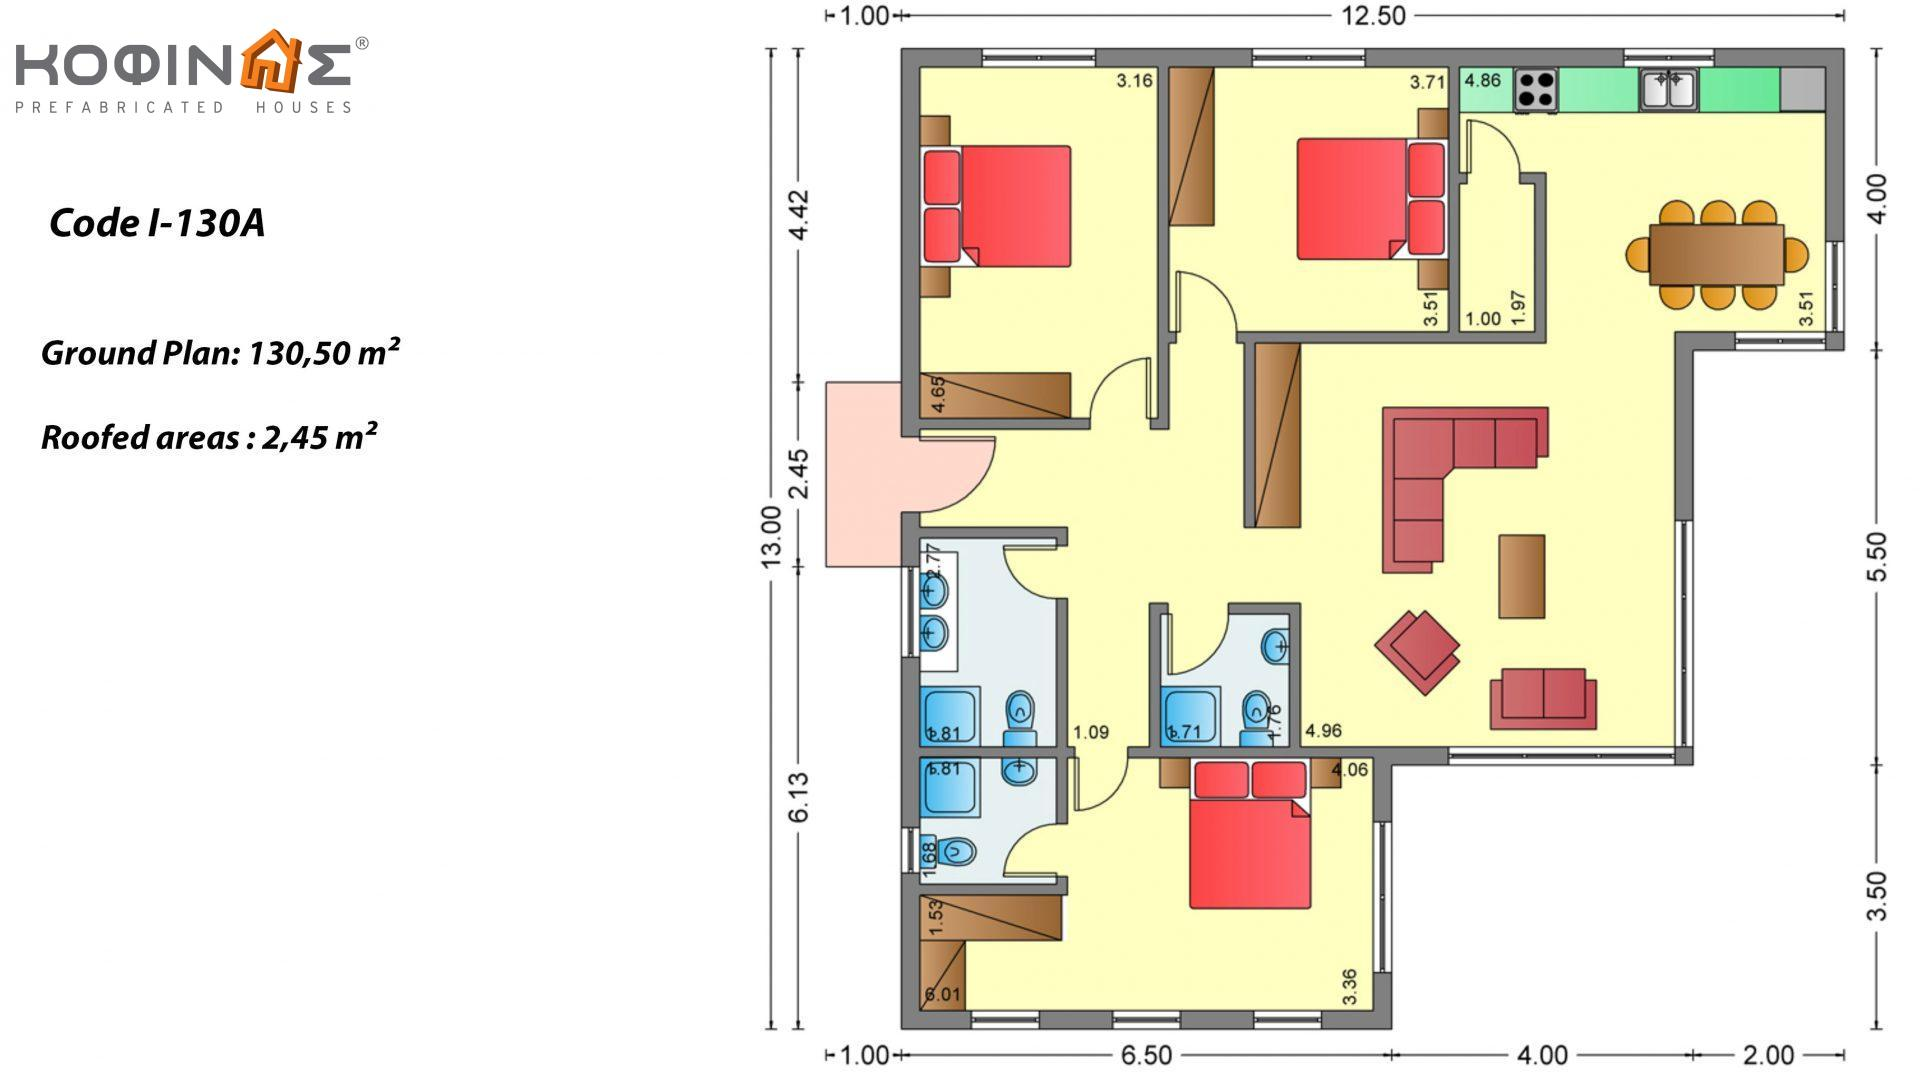 1-story house Ι-130Α, total surface of 130,50 m², roofed areas 2,45 m²